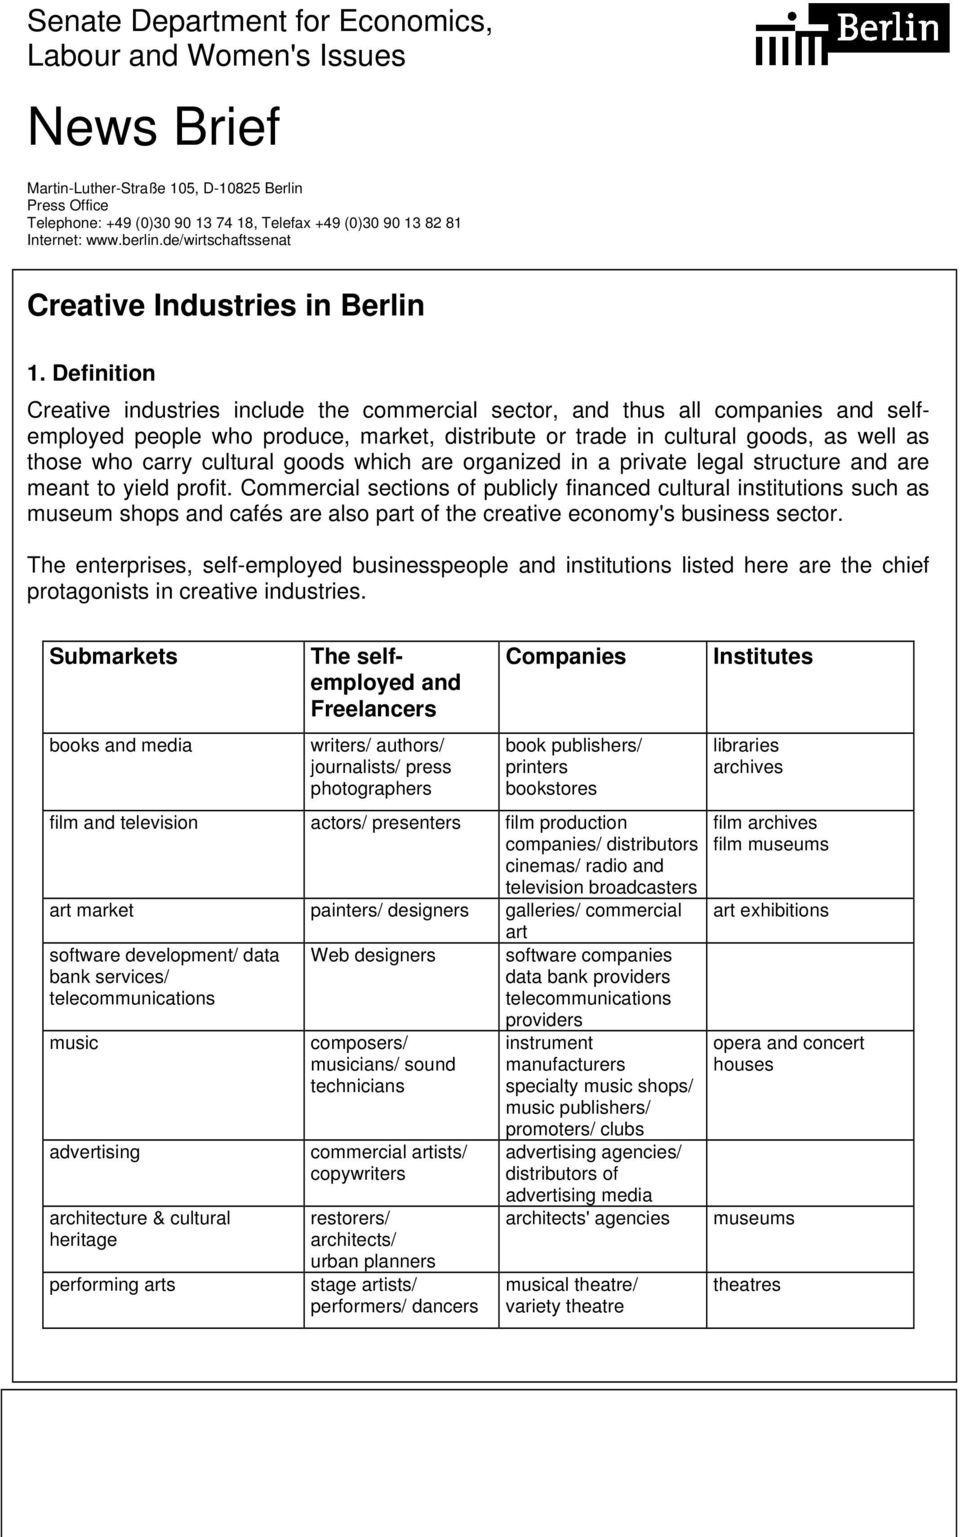 Definition Creative industries include the commercial sector, and thus all companies and selfemployed people who produce, market, distribute or trade in cultural goods, as well as those who carry